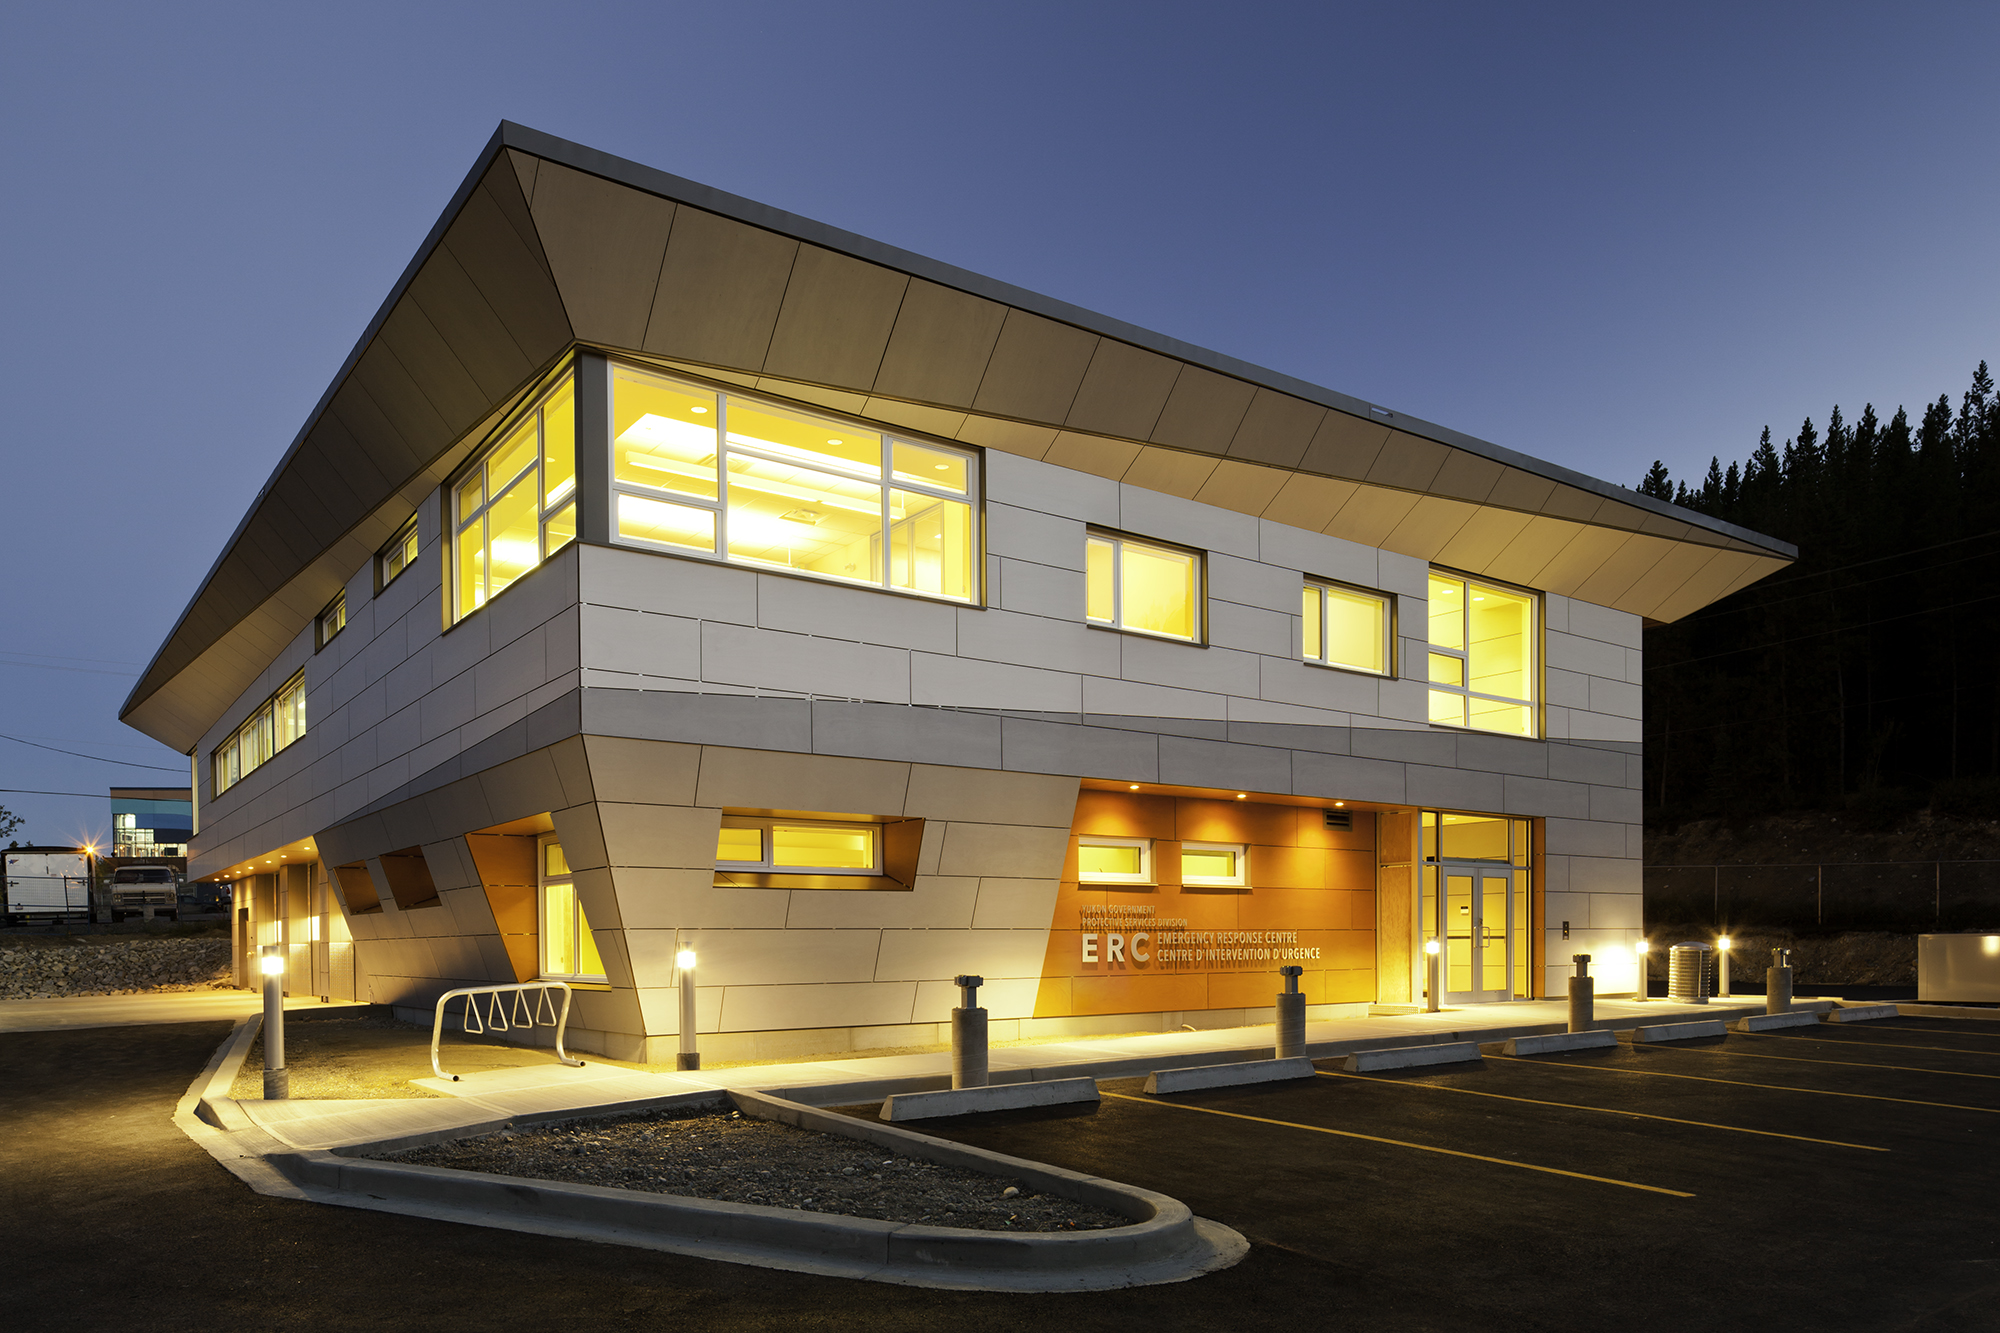 Whitehorse Emergency Response Centre